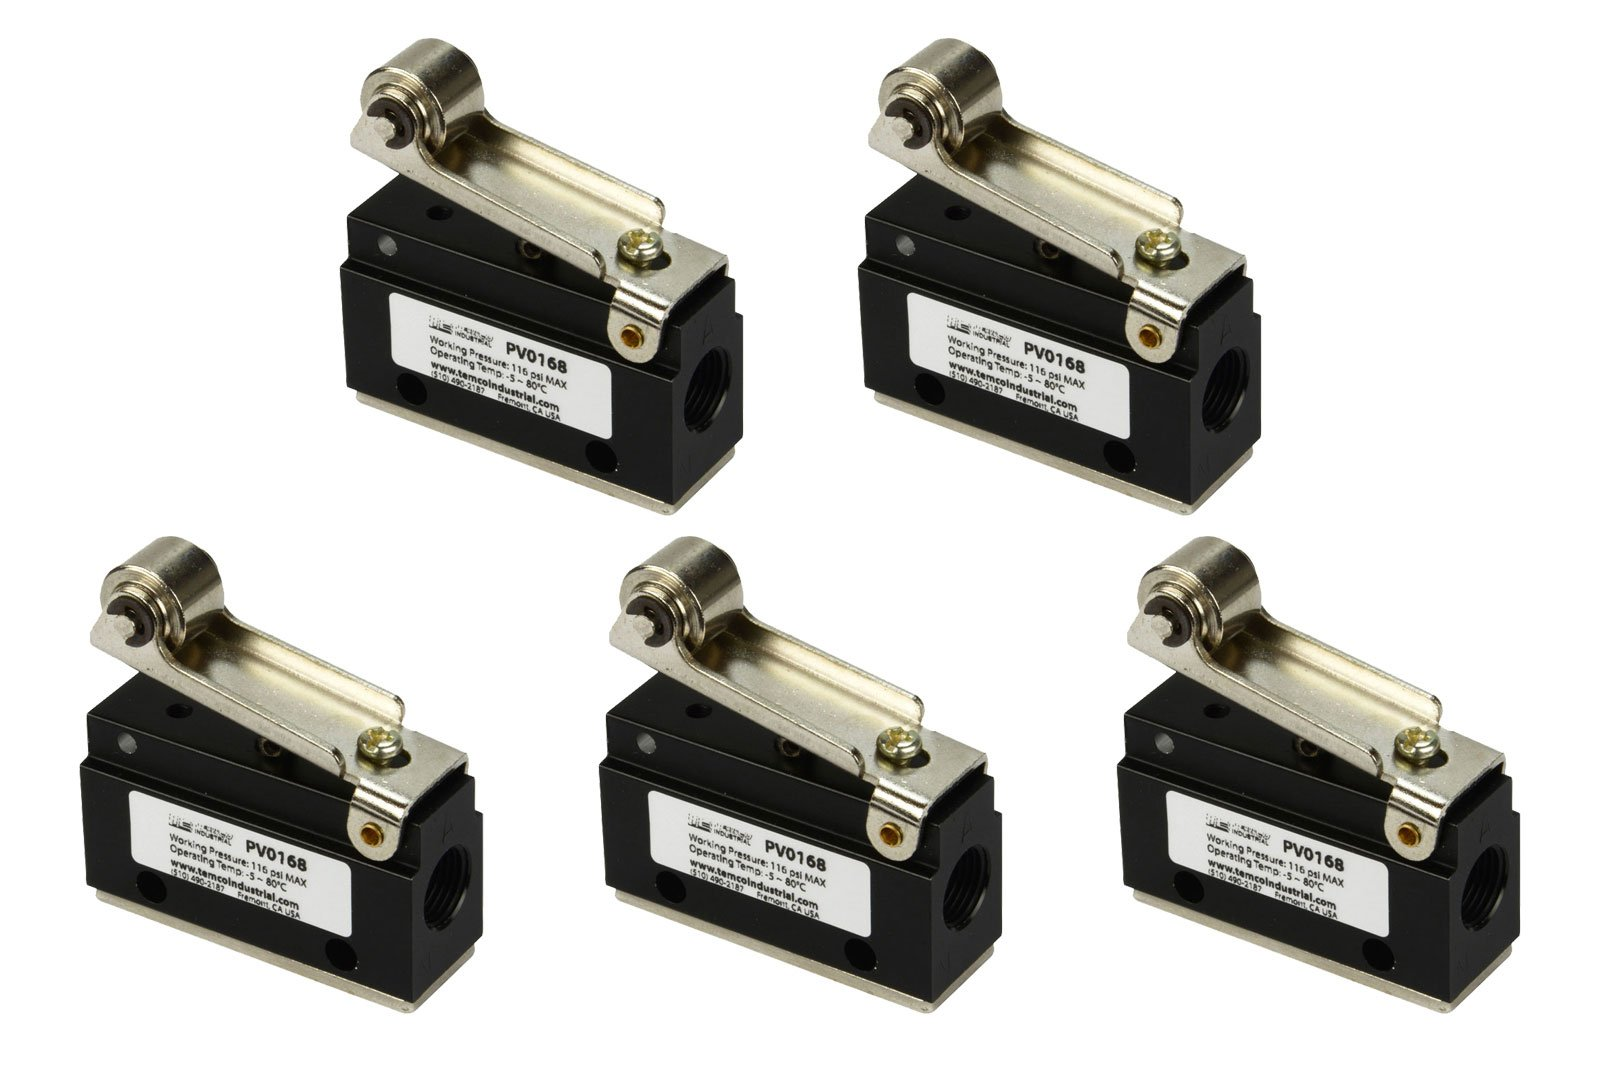 5 Qty Roller Limit Switch Normally Closed Pneumatic Air Control Valve 2 Port 2 Way 2 Position 1/8'' NPT